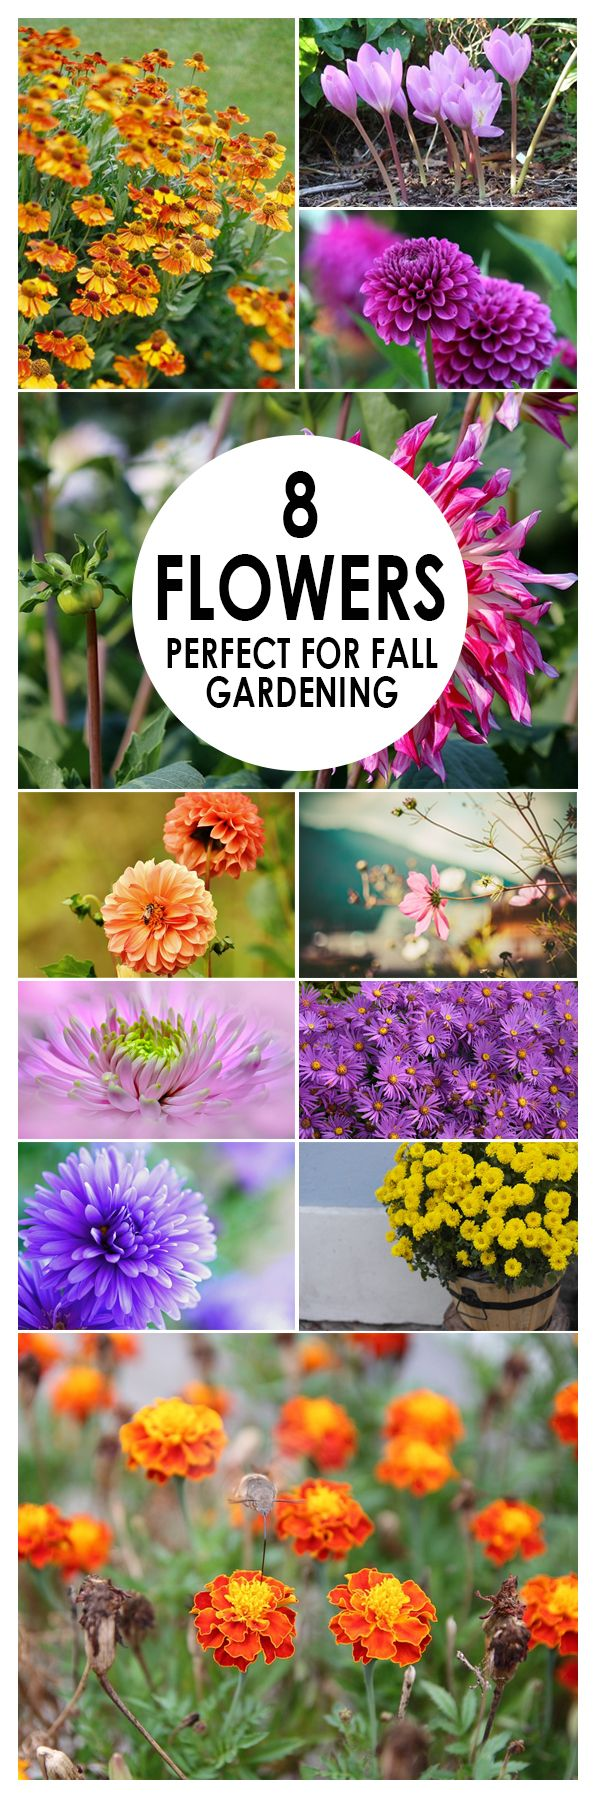 Best 25 fall flower gardens ideas only on pinterest bulb 8 flowers for fall gardens dhlflorist Image collections